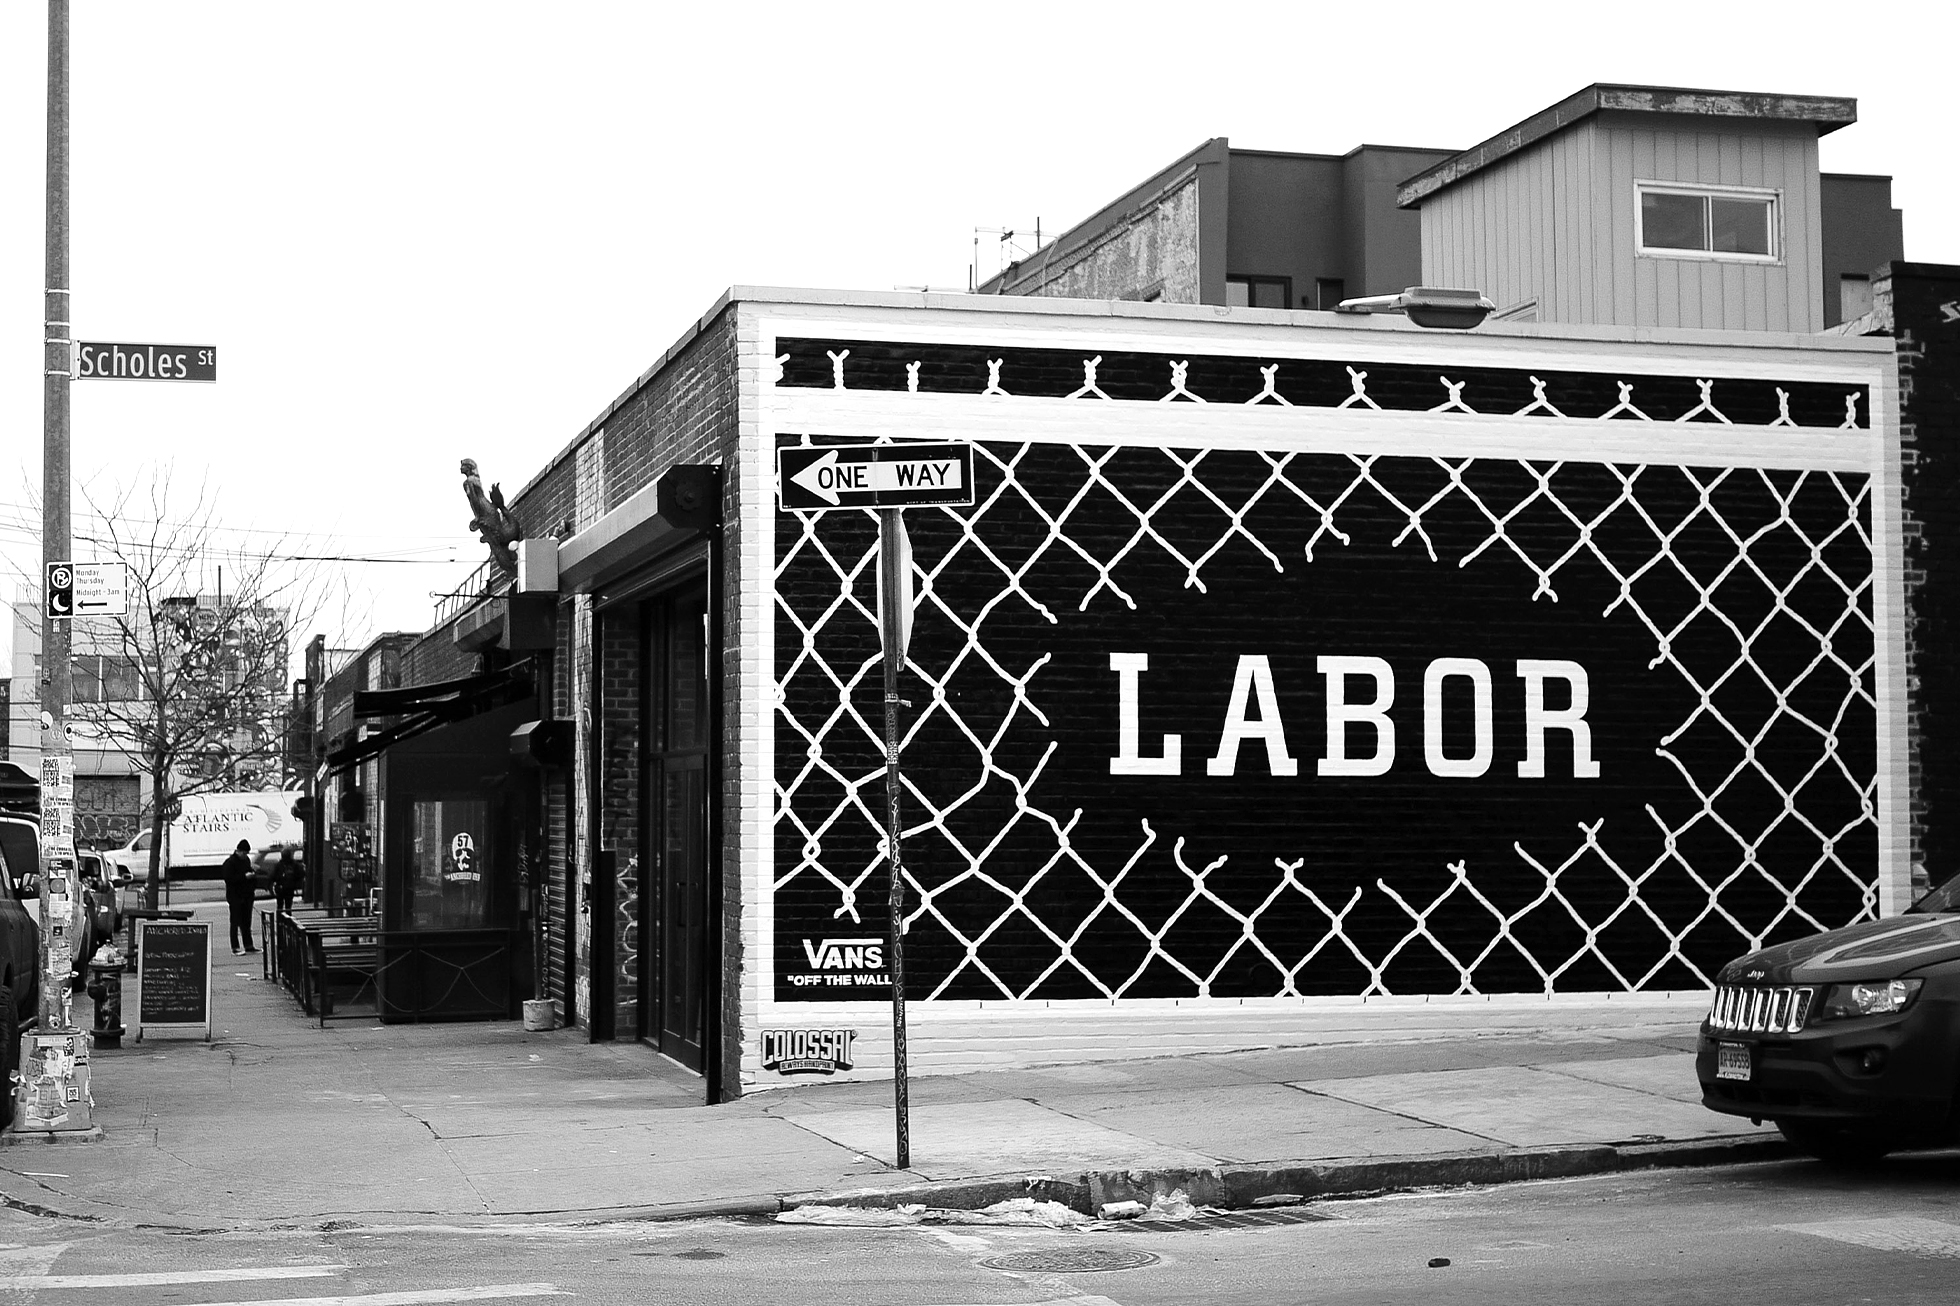 Welcoming Labor, NYC's Finest Skate Shop